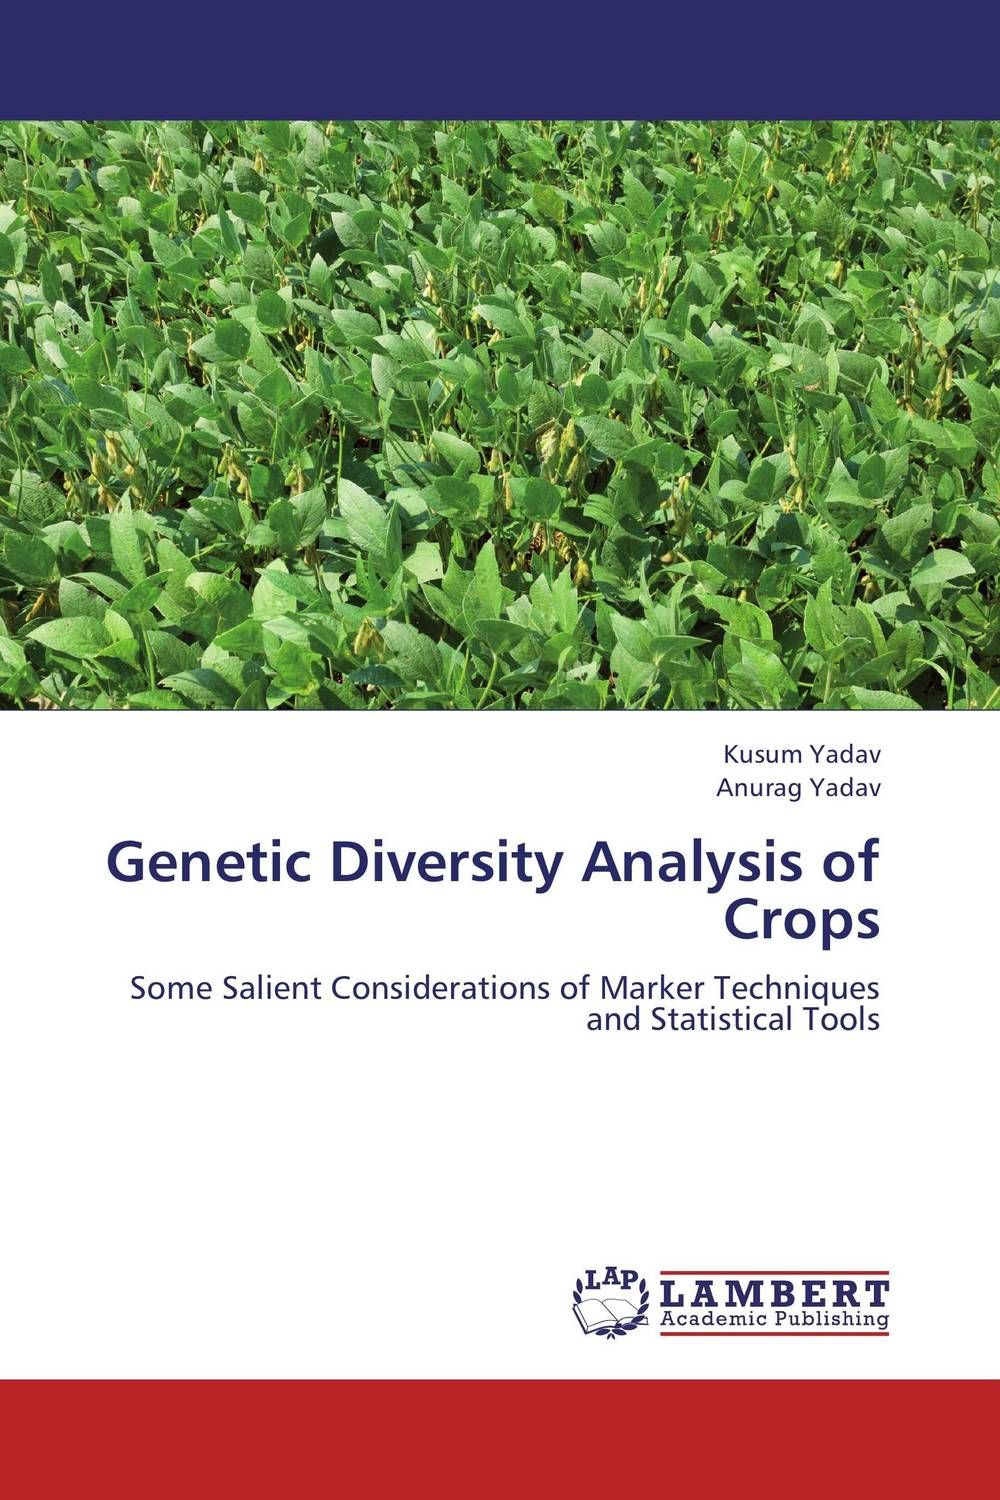 Genetic Diversity Analysis of Crops купить